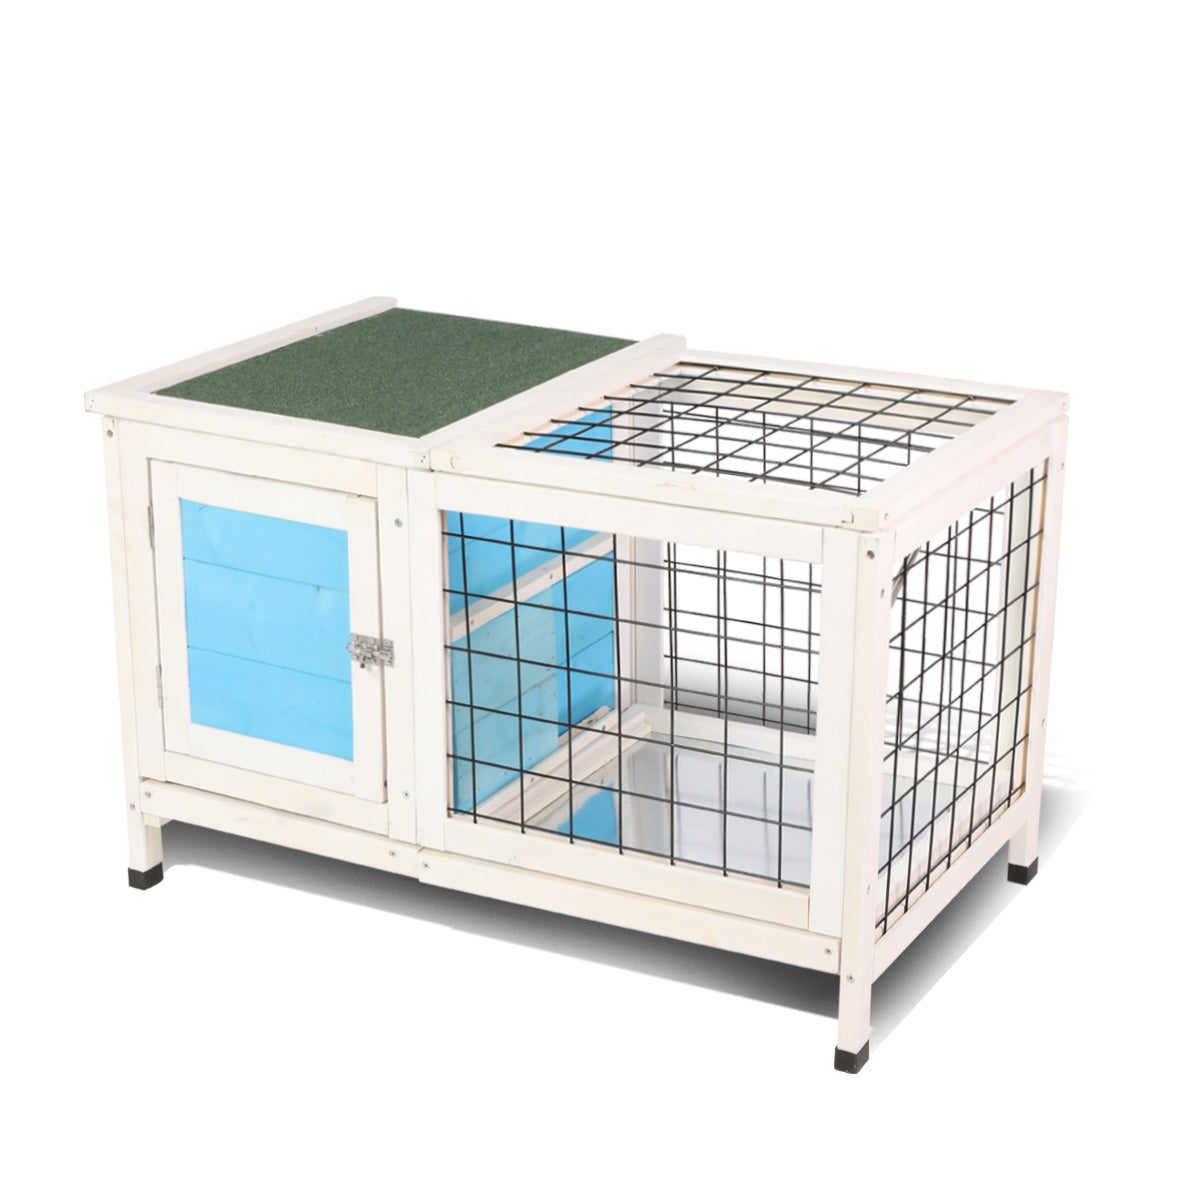 Sky Blue Wooden Small Animal Chicken Coop Rabbit Hutch Bunny House Gage with 2 Removable